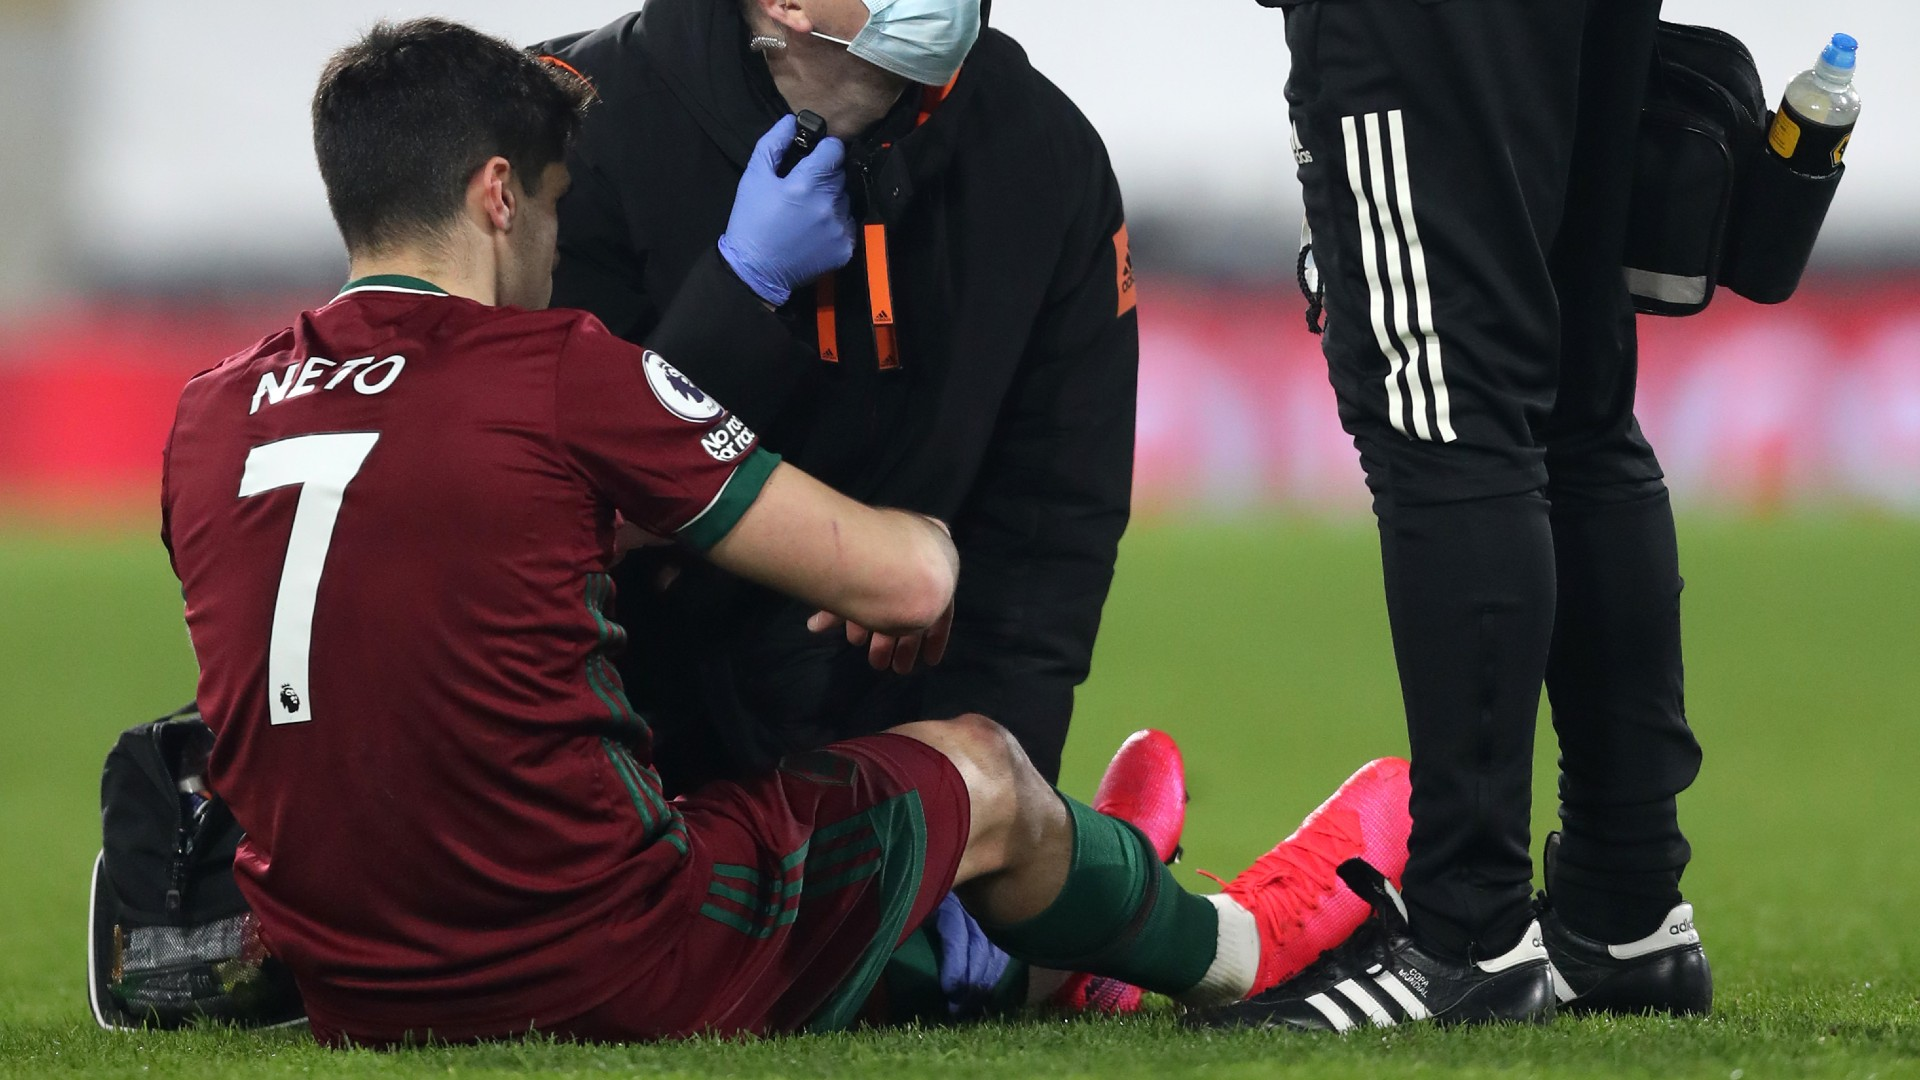 Neto out for season, Euros doubt